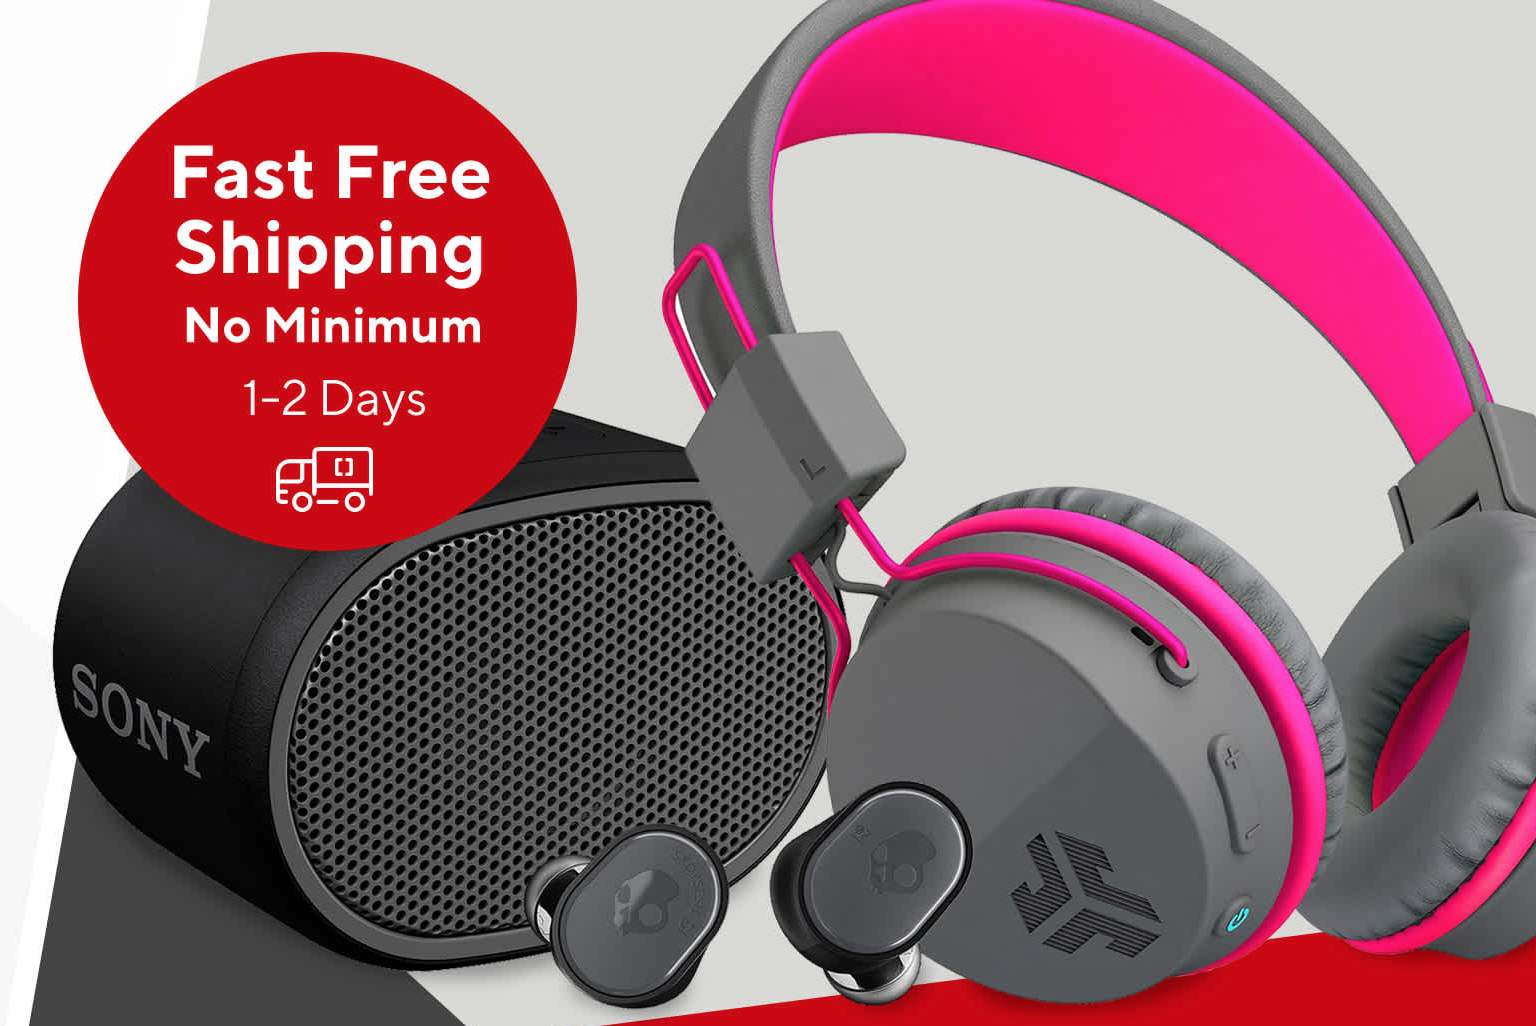 Staples Canada Sale: Save 40% On Headphones & Speakers + Up To 40% Off Many Items & FREE Shipping & More